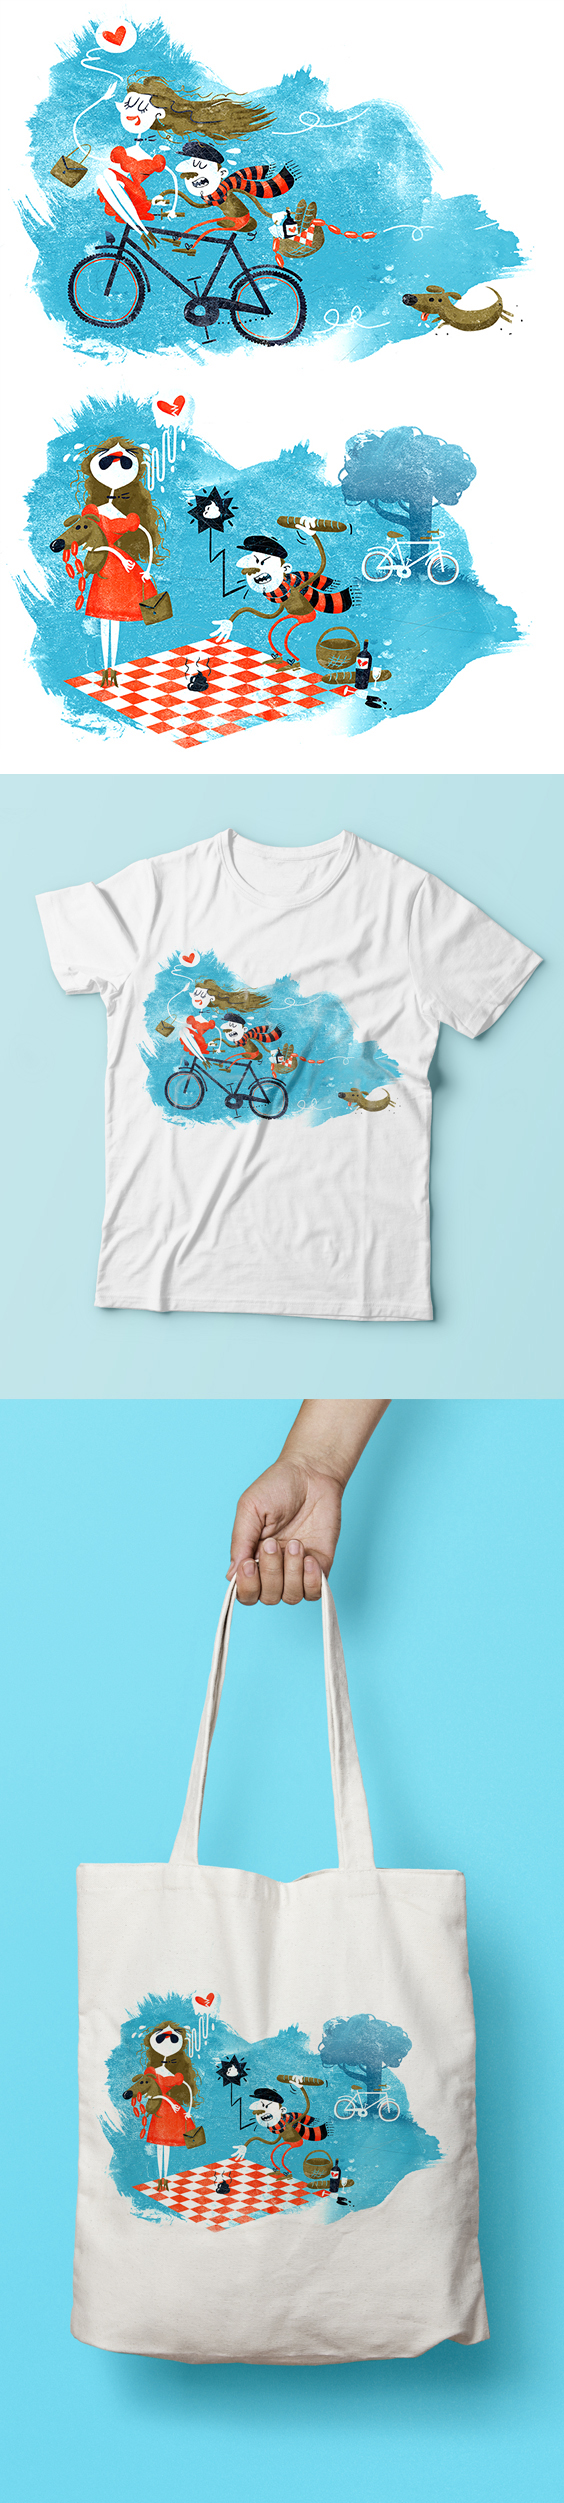 Two whimsical bike illustrations for T-shirt and tote bags. By Stina Norgren